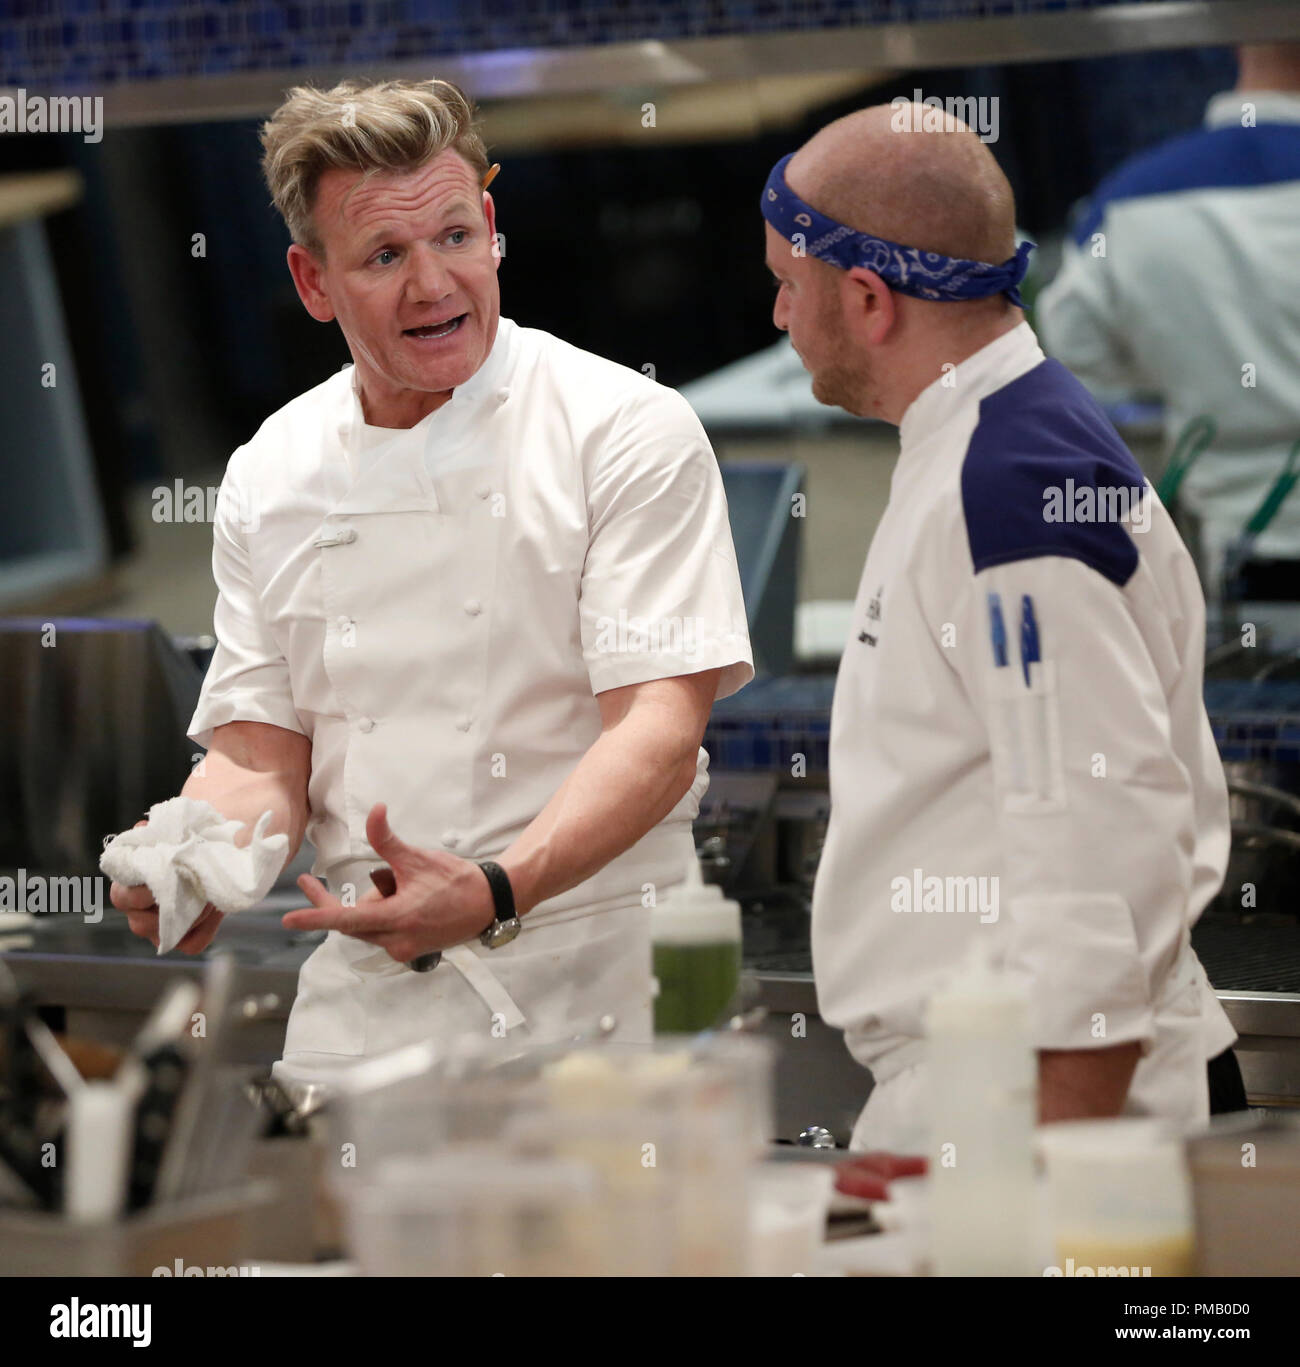 Hell S Kitchen L R Gordon Ramsay And Contestant Jared In